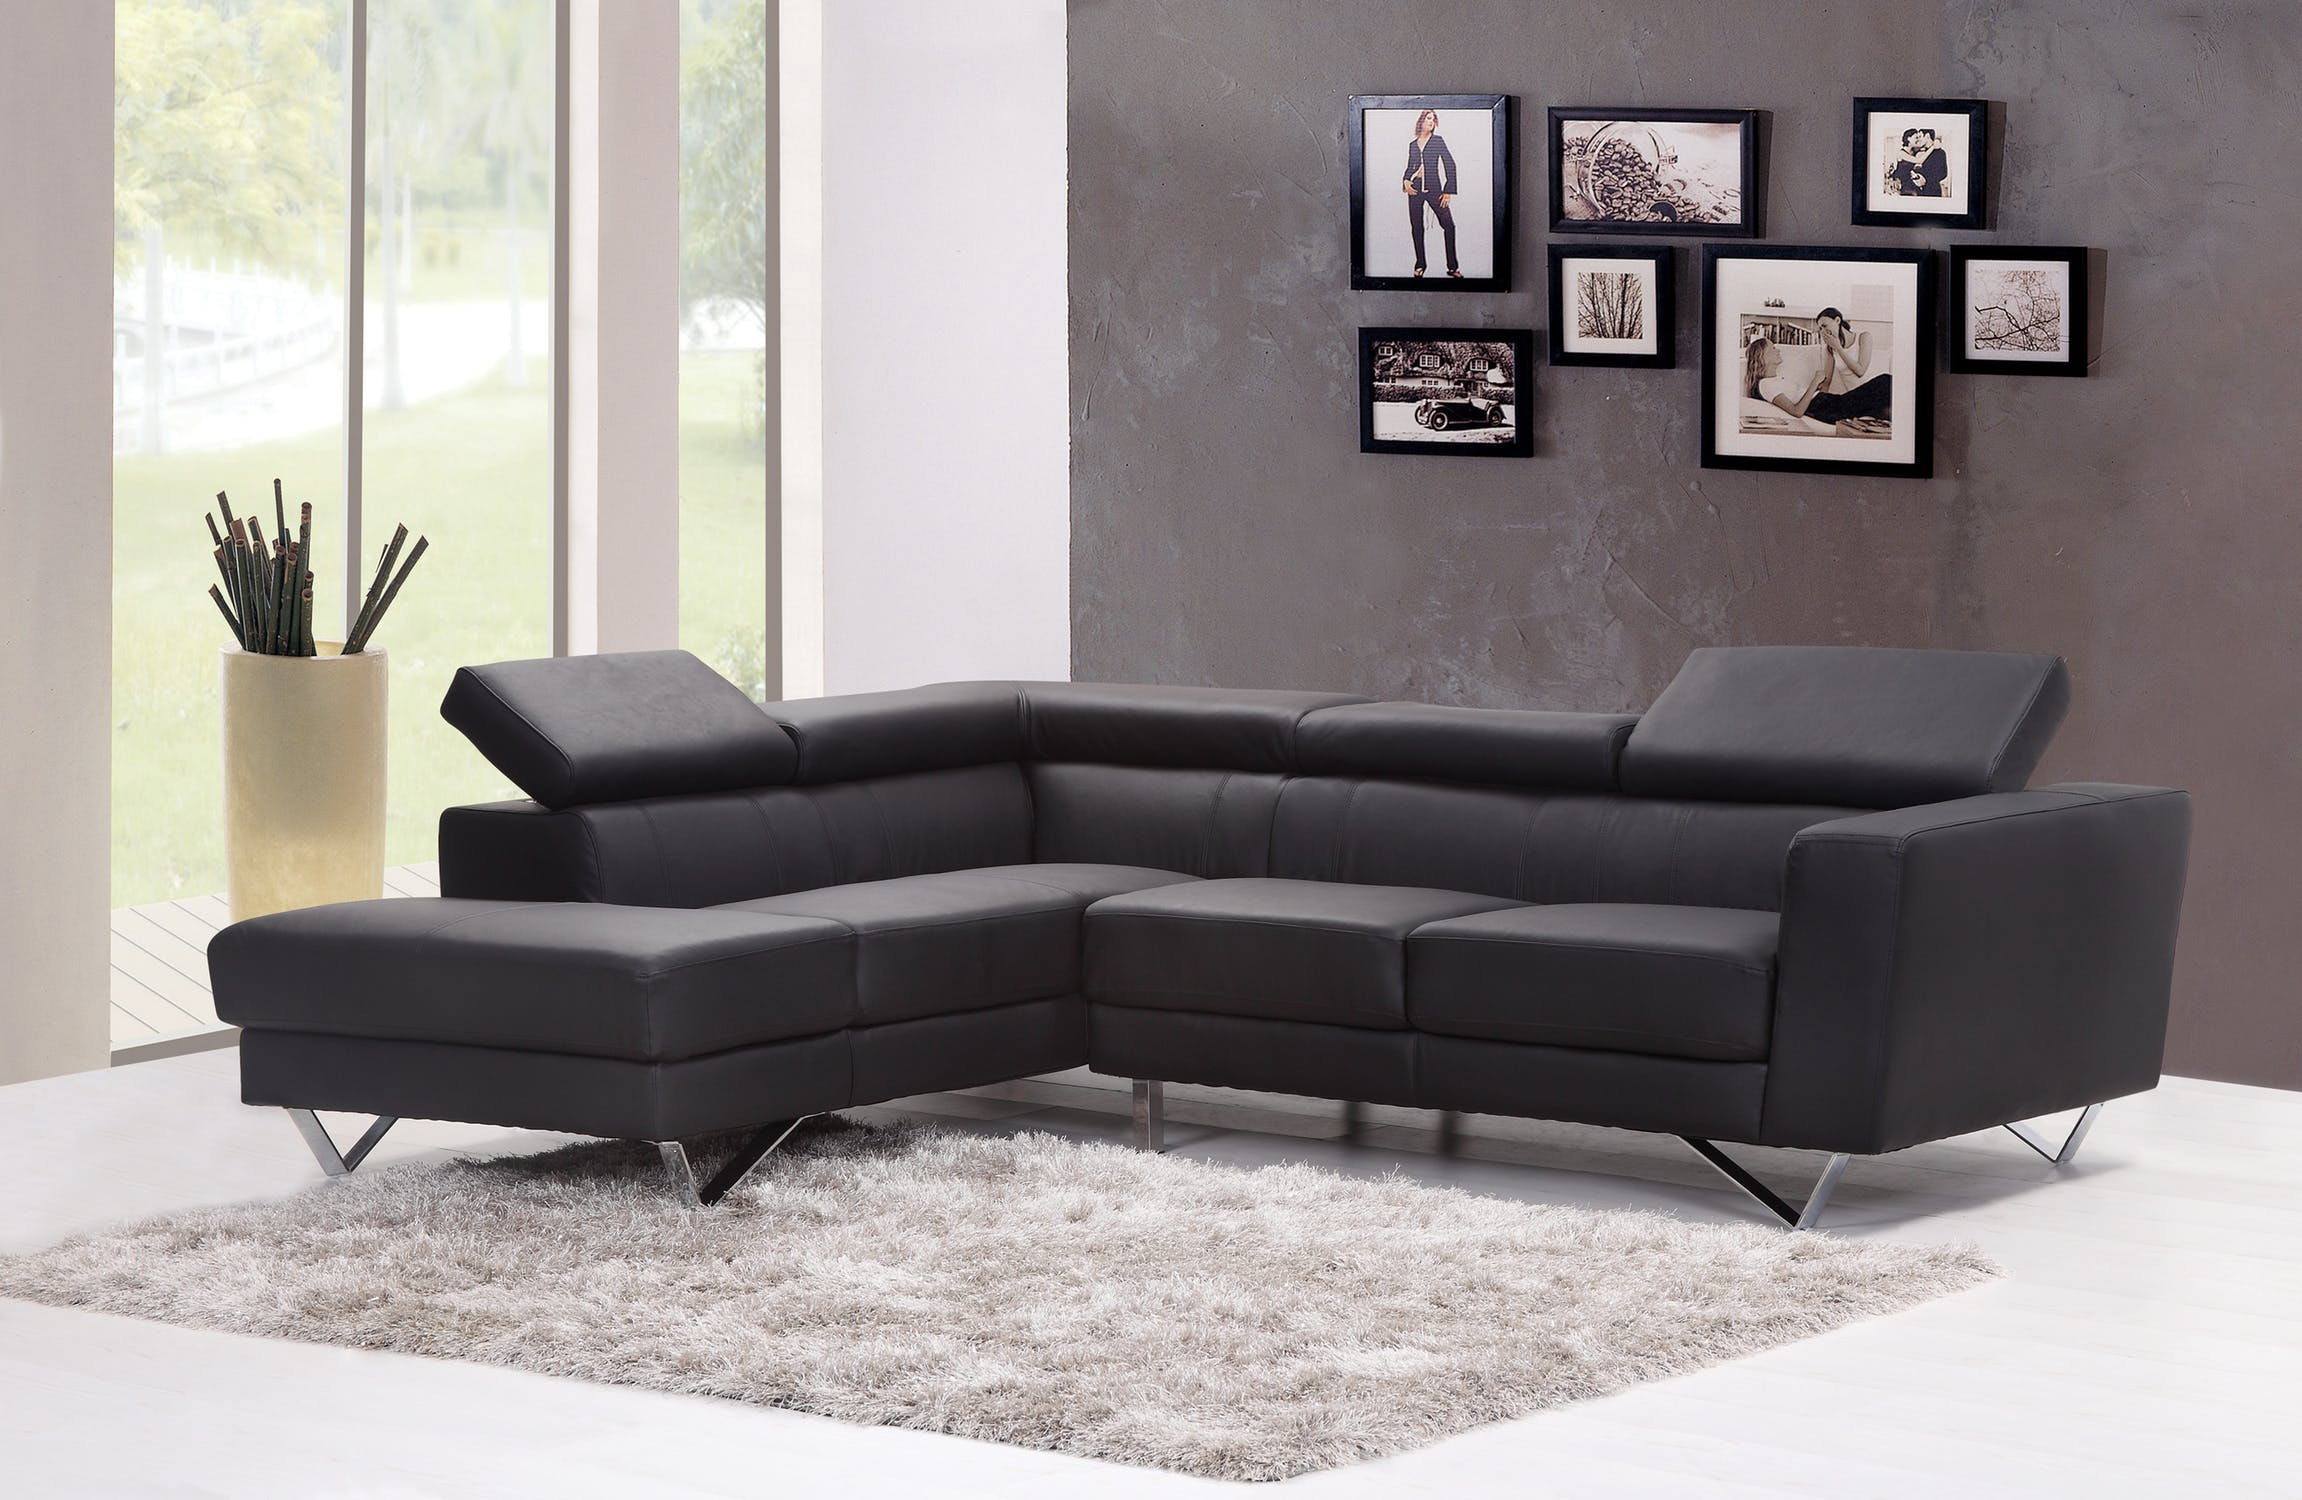 Ideal Storage sofa